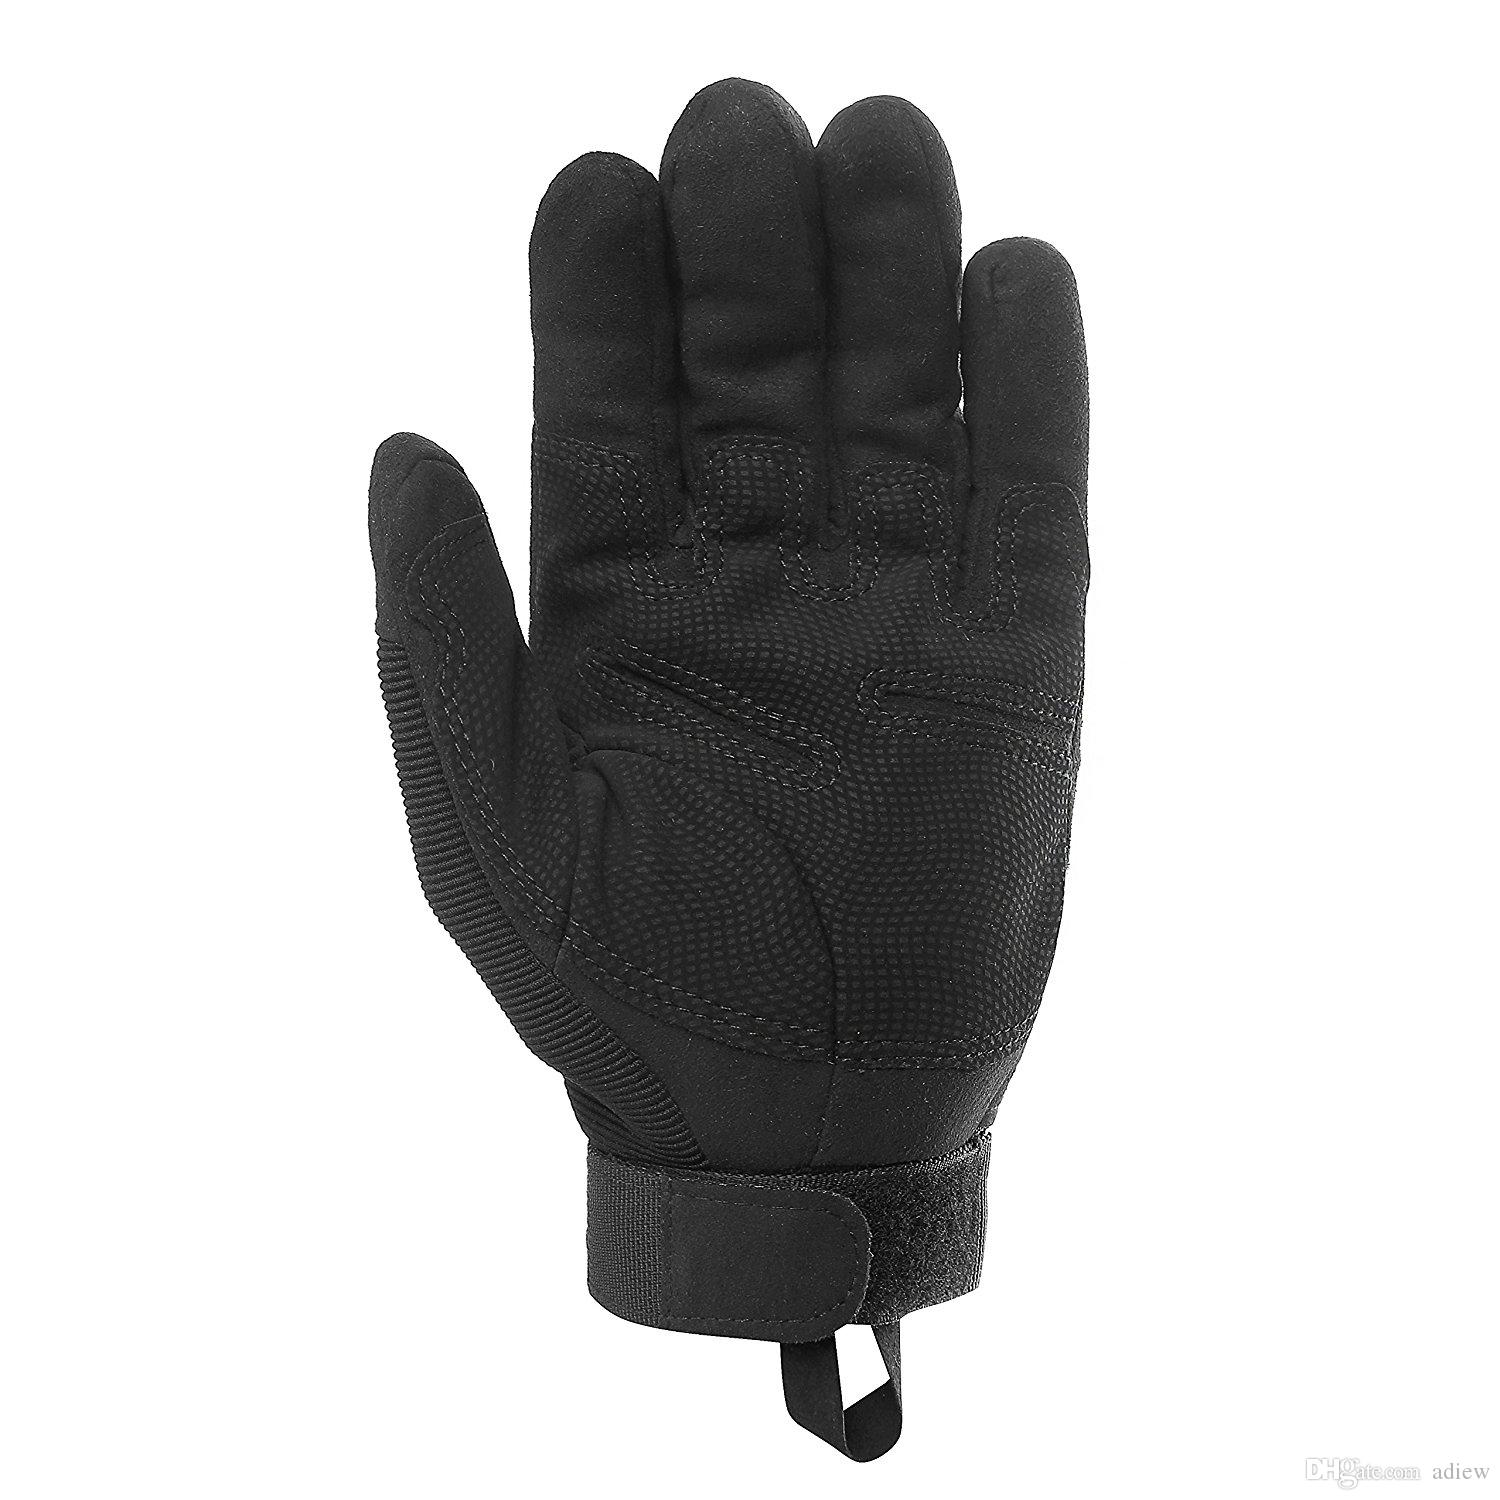 Army Tactical Gloves Military Rubber Hard Knuckle Full Finger Gloves for Cycling Motorcycle gloves